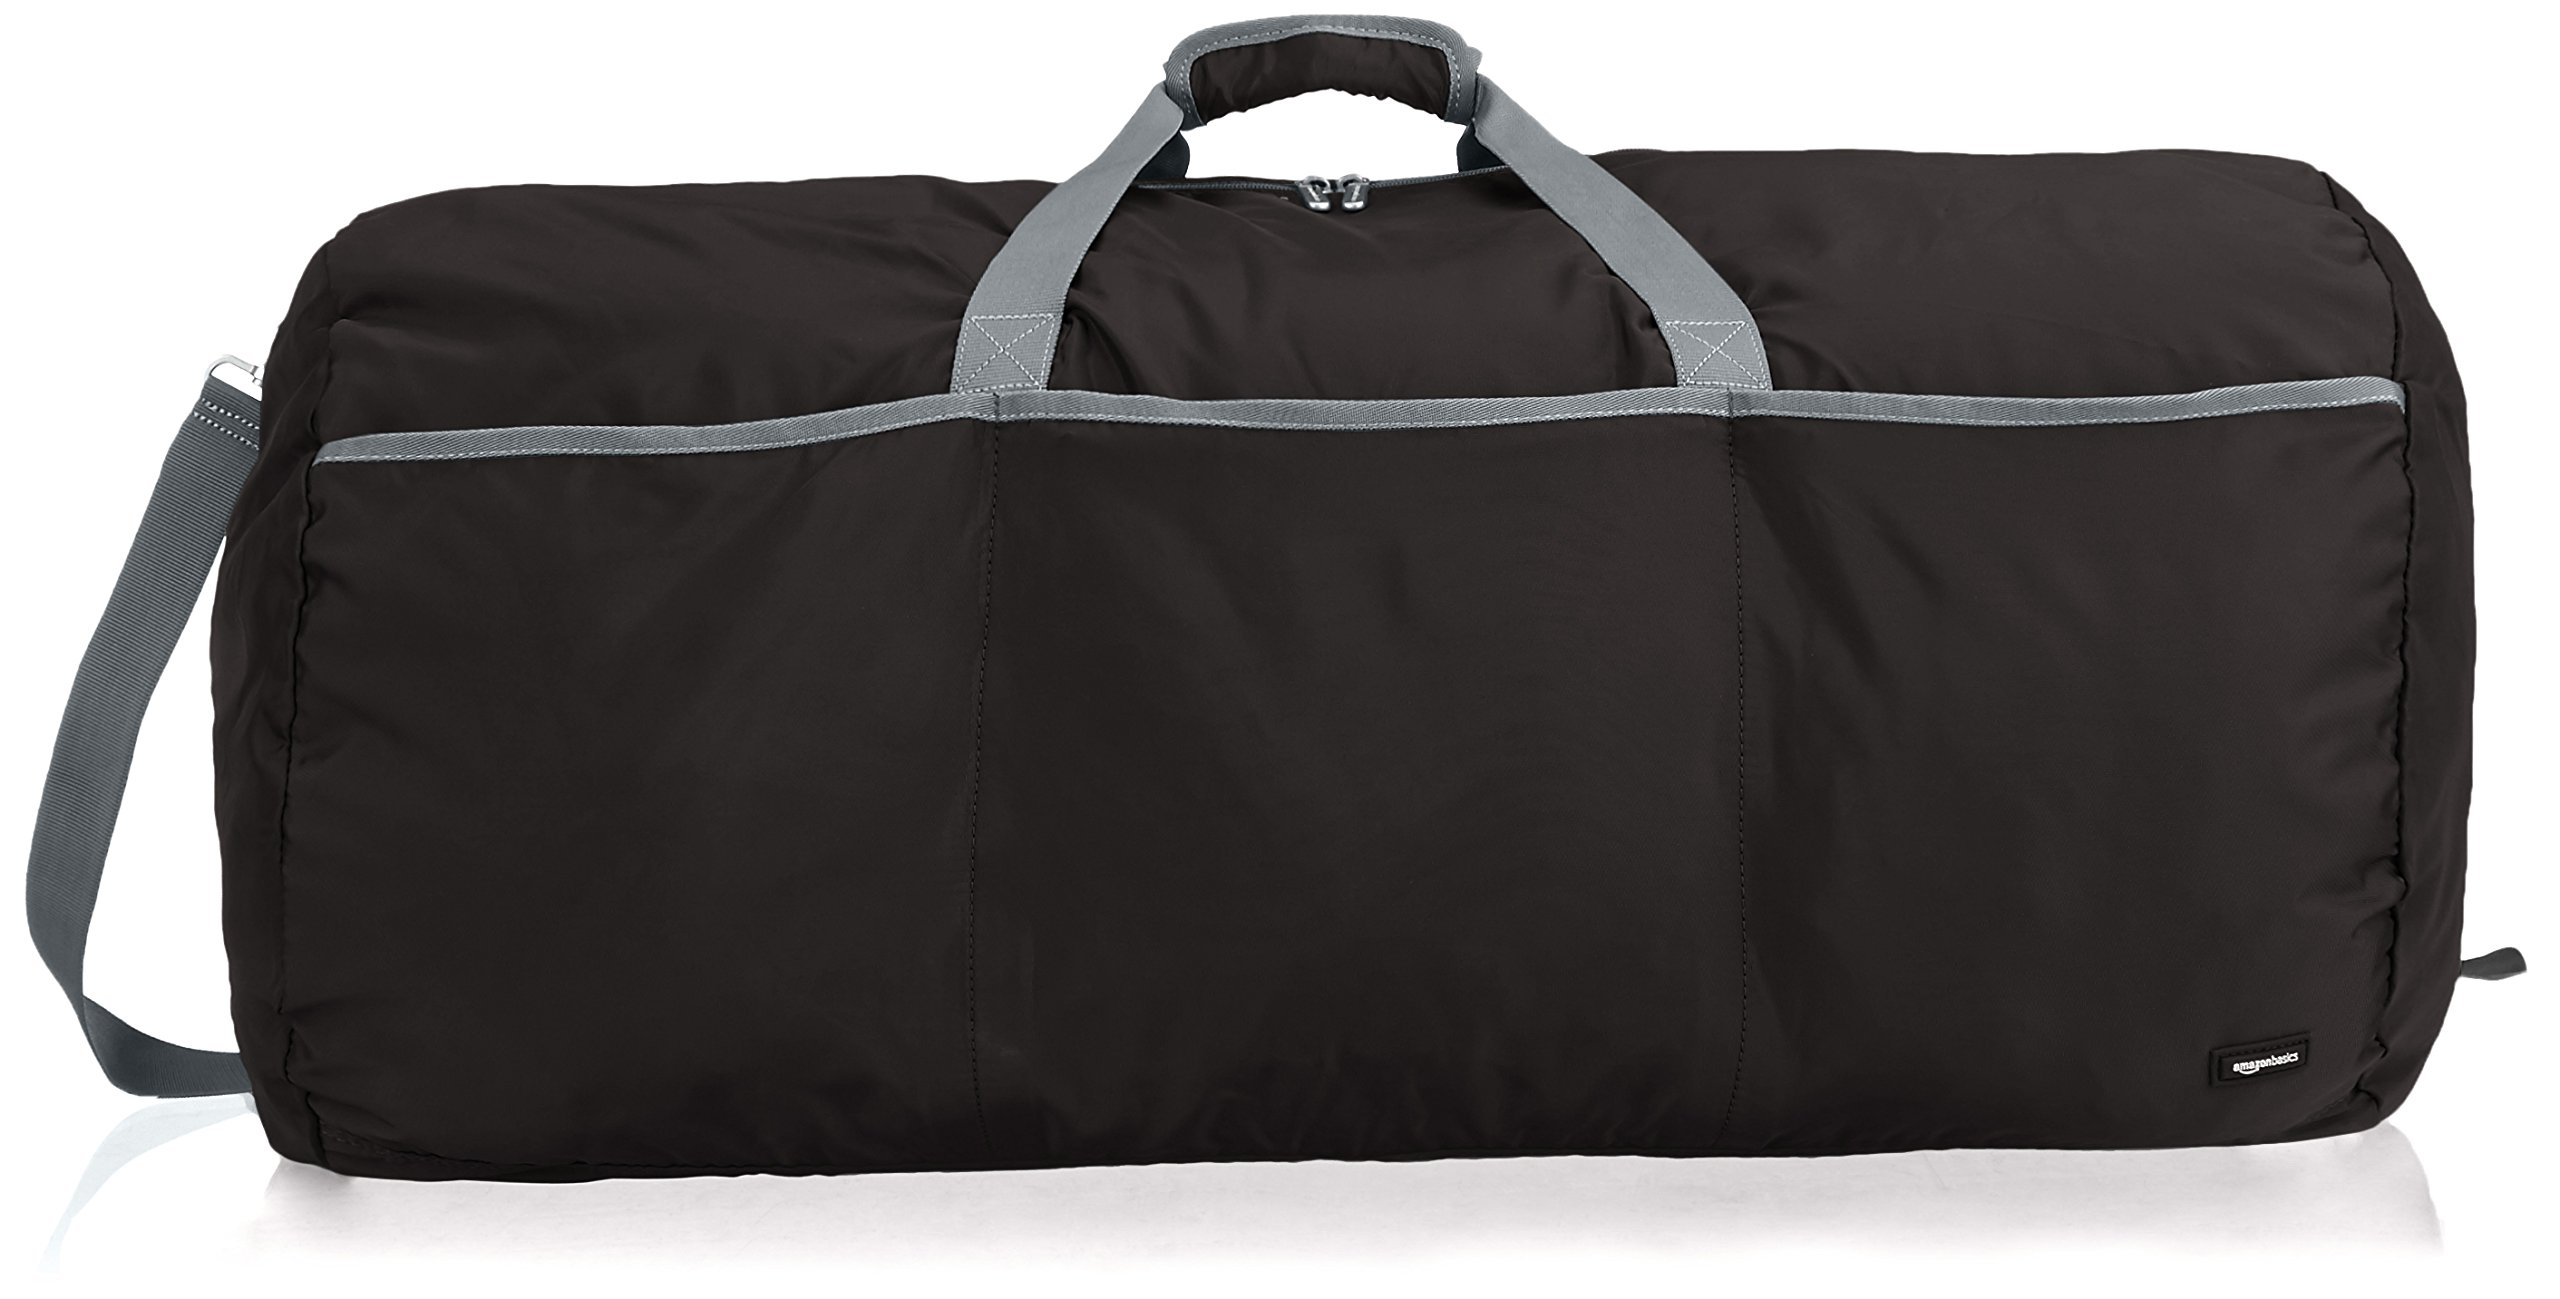 AmazonBasics Large Duffel Bag, Black